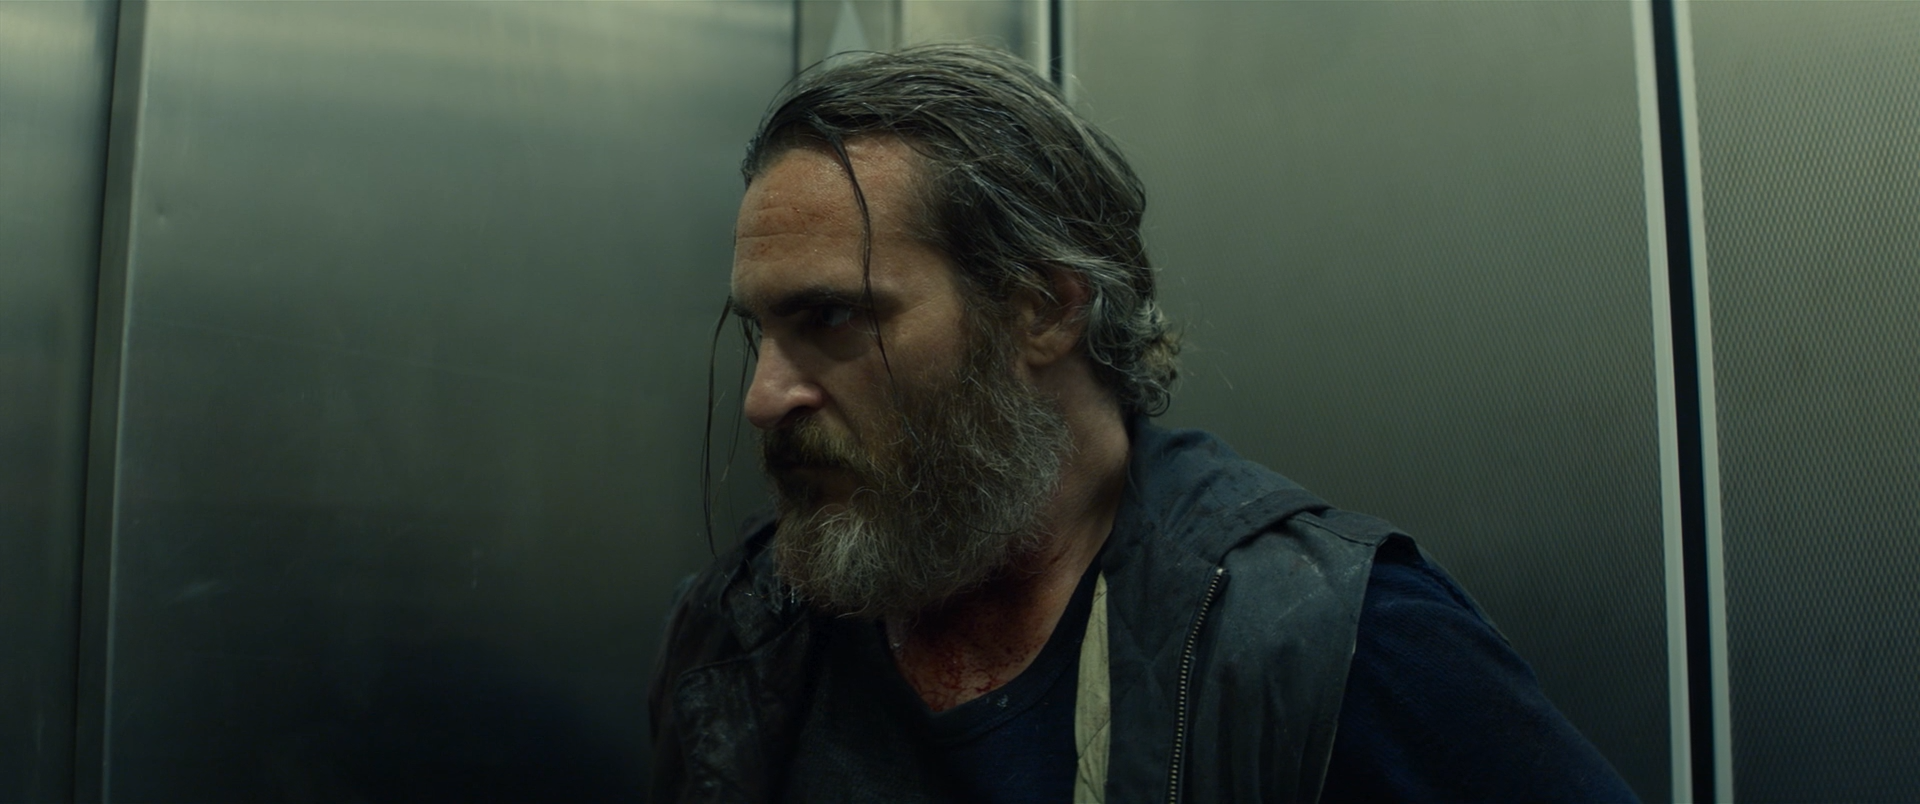 Тебя никогда здесь не было / You Were Never Really Here (2017/BDRip) 1080p | iTunes